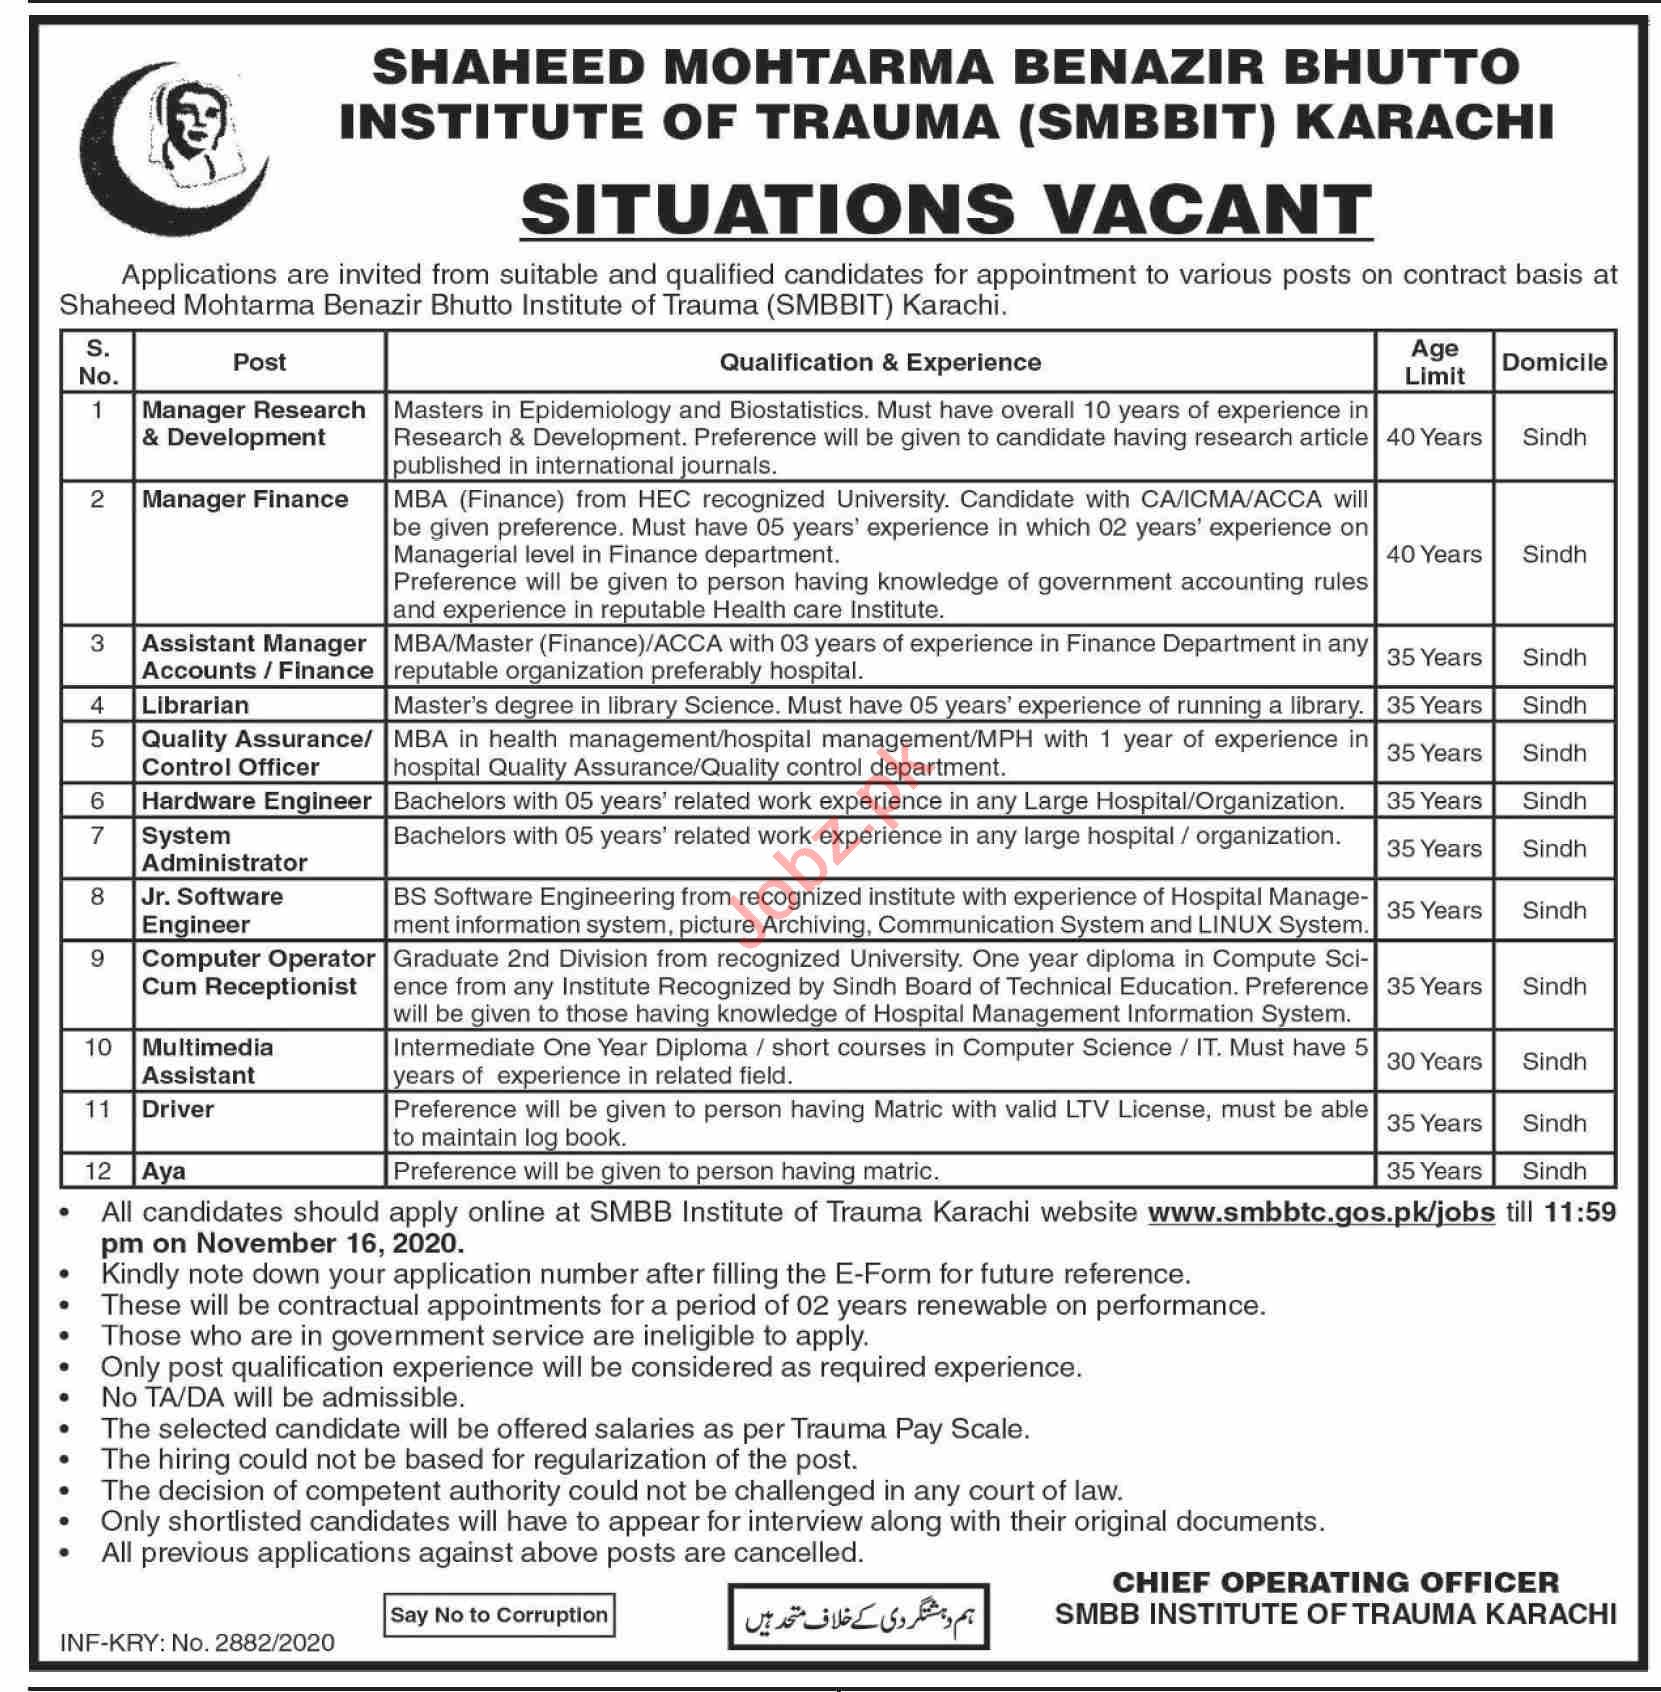 SMBB Institute of Trauma Karachi Jobs 2020 for Managers